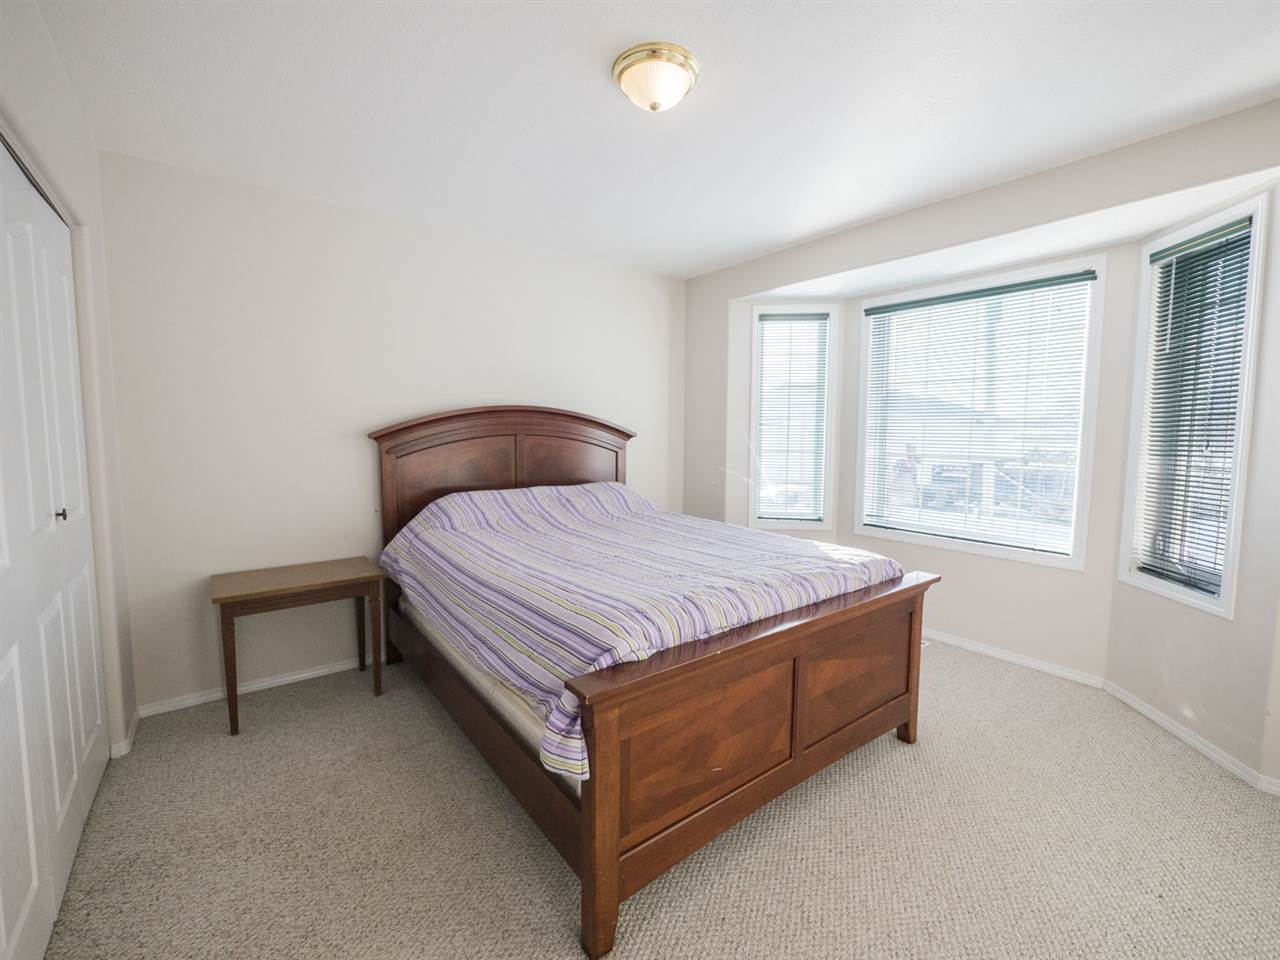 Third bedroom on main level offers a large bow window letting in lots of natural light.